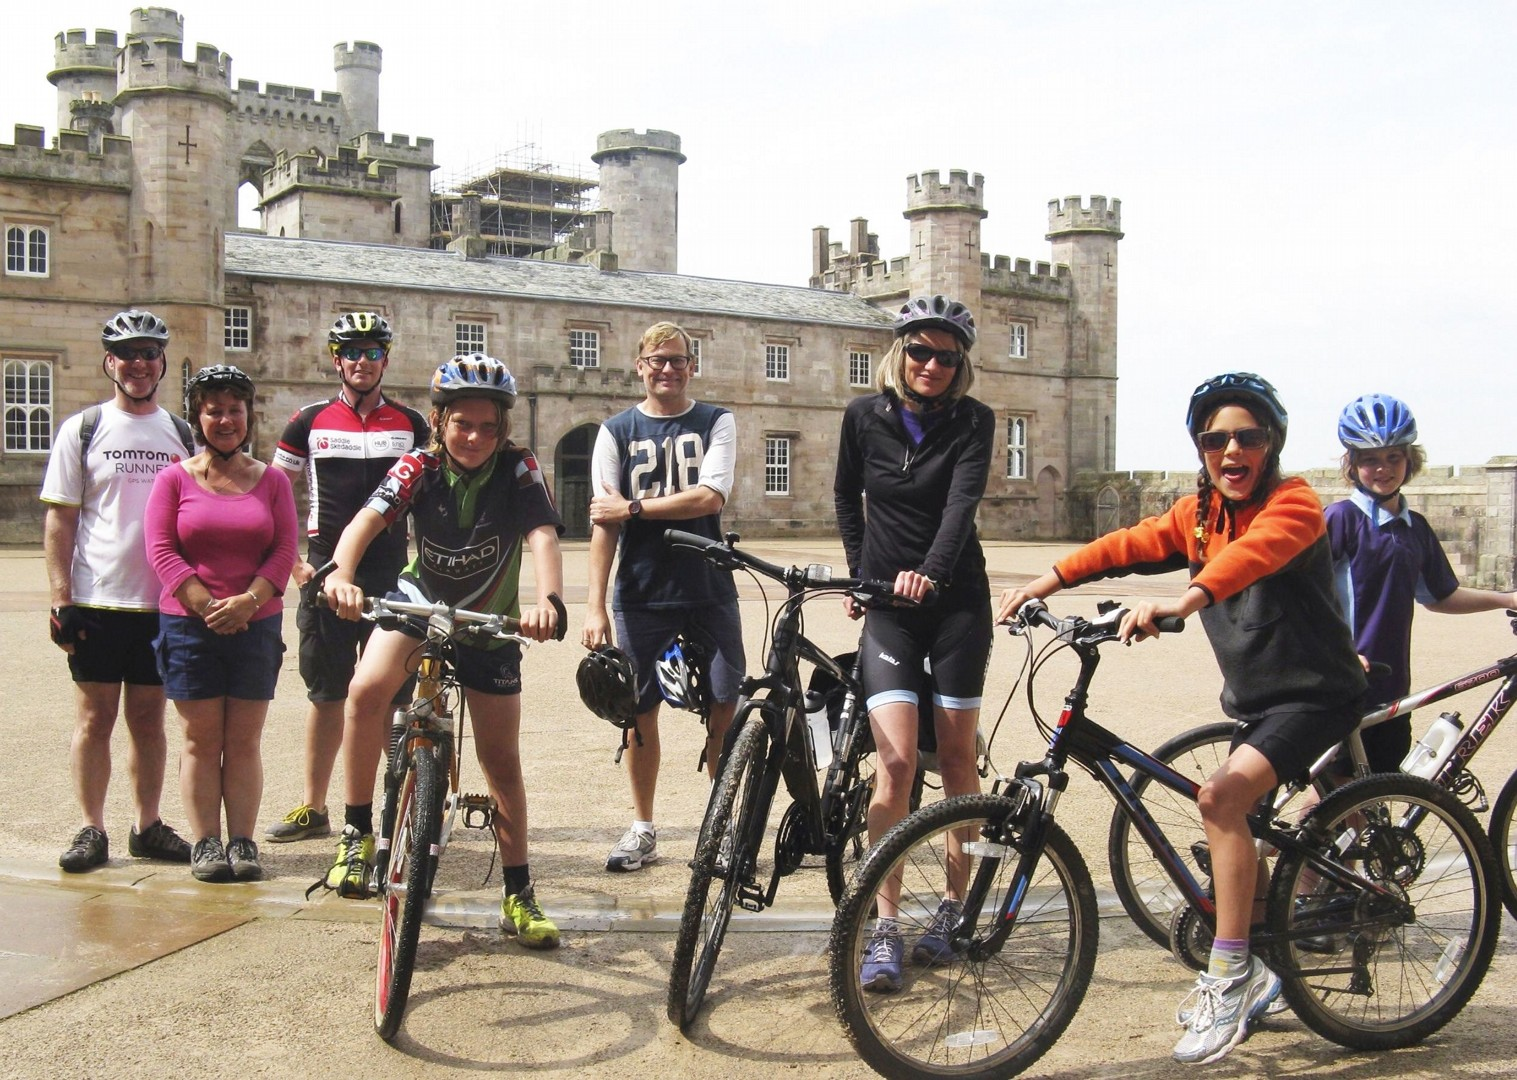 castles-lake-district-family-cycling-holiday.jpg - UK - Lake District - Bike Skills - Family Cycling